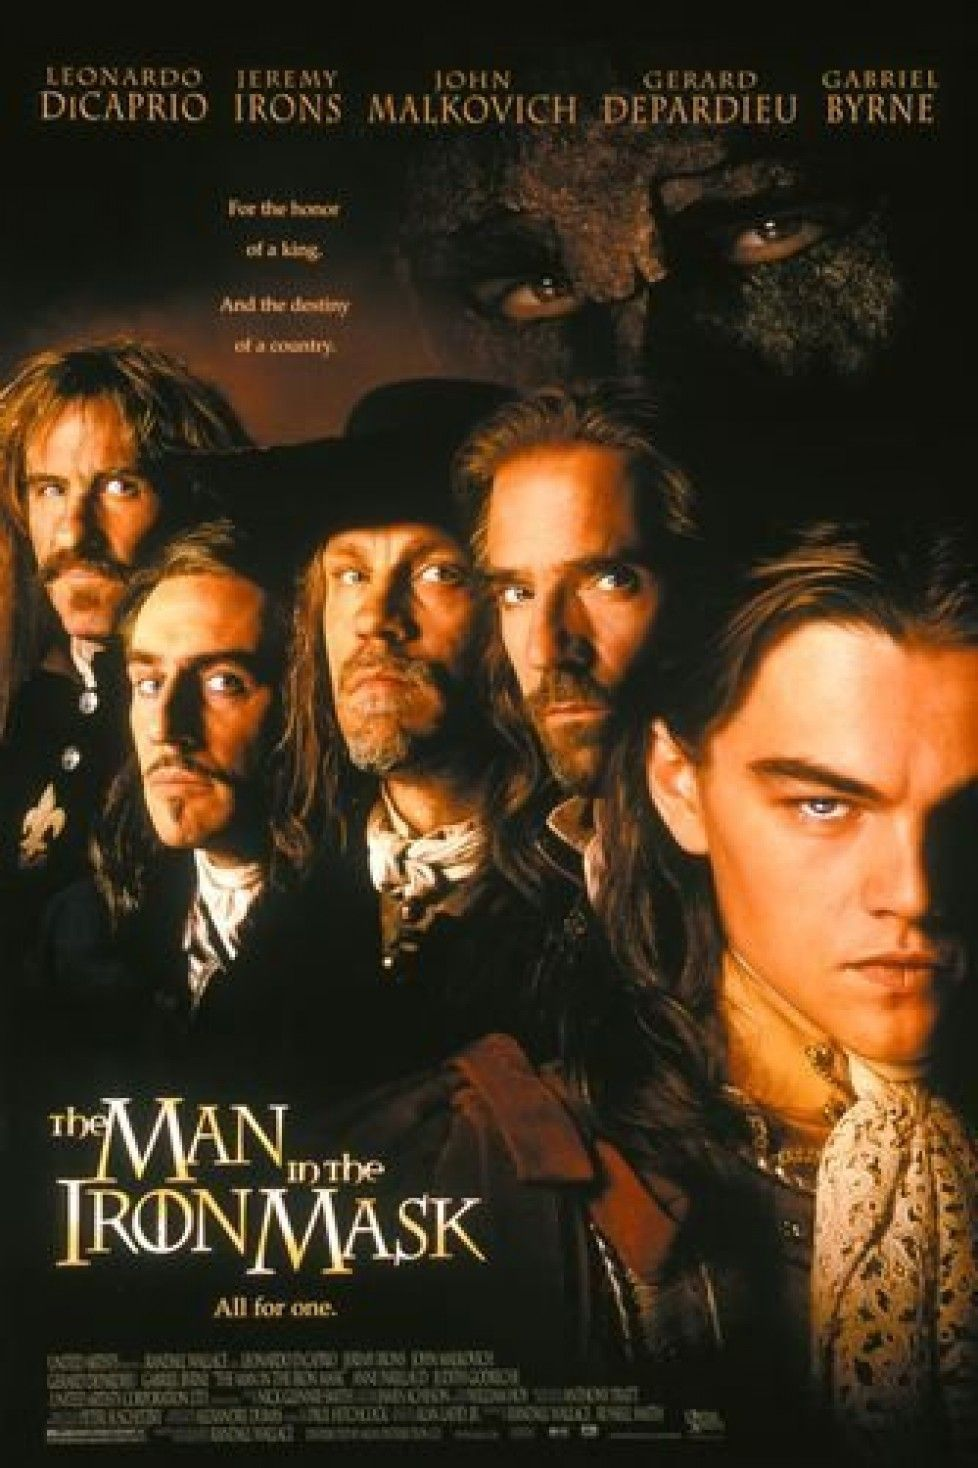 The Man in the Iron Mask (1998) - A film that I watched over and over.